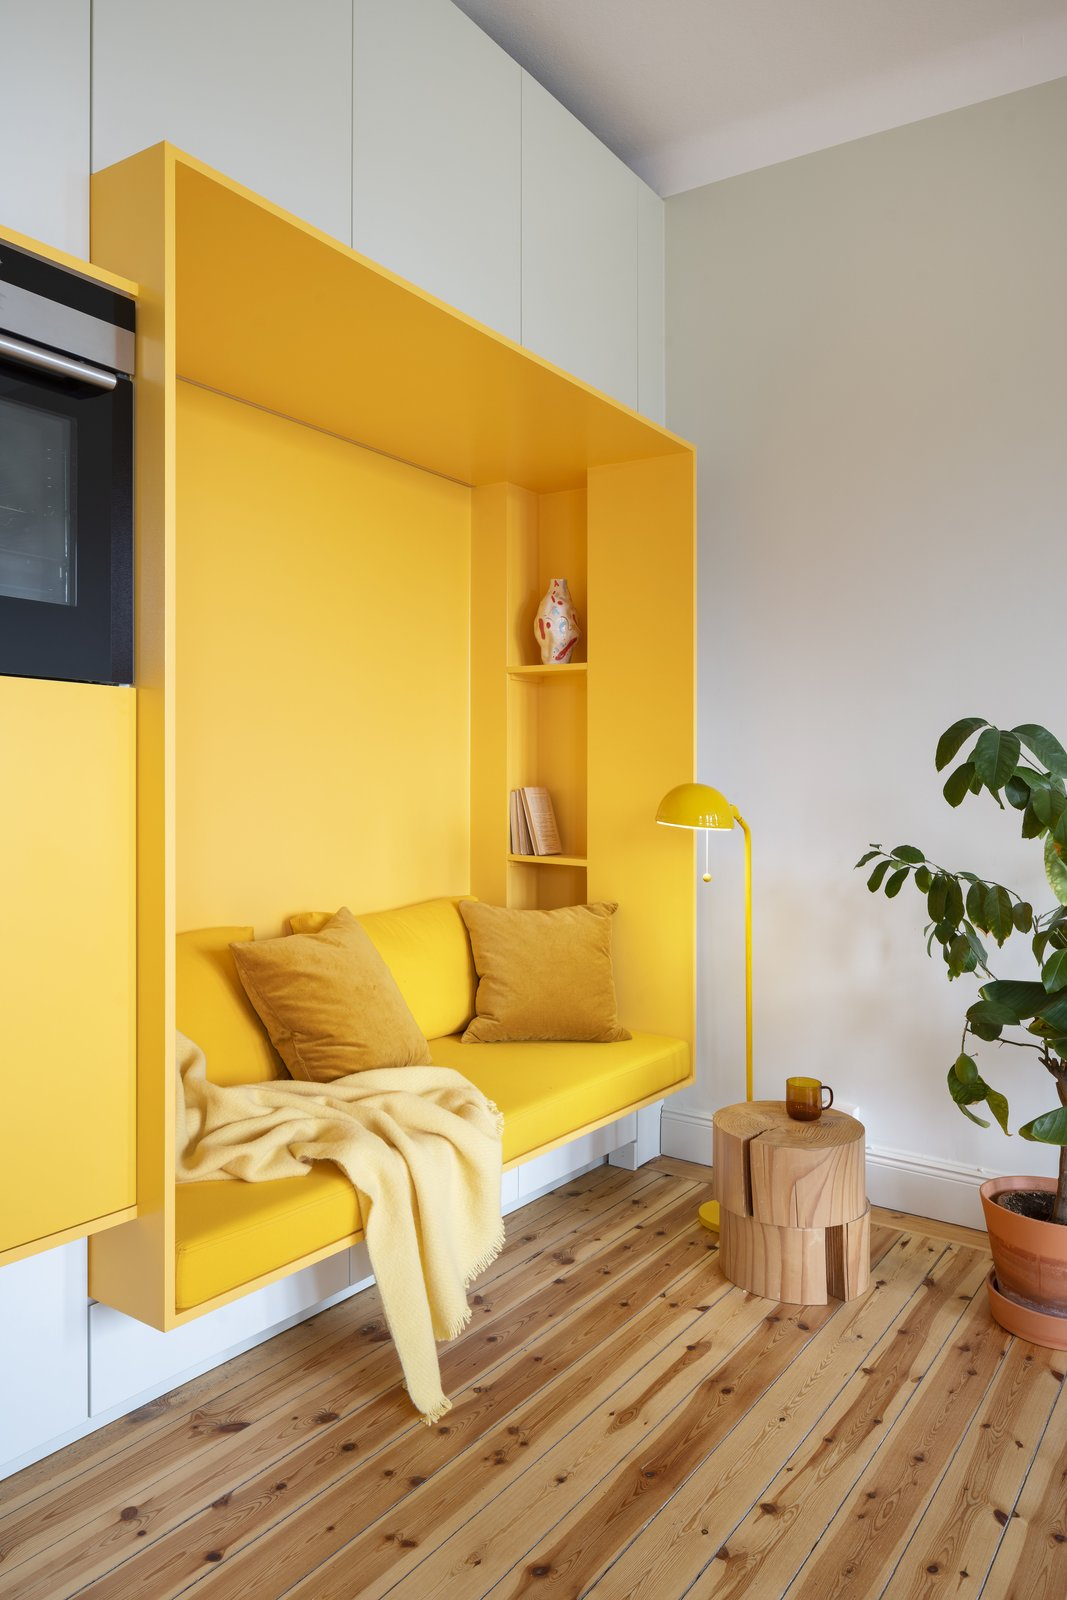 Bright yellow built-in seating